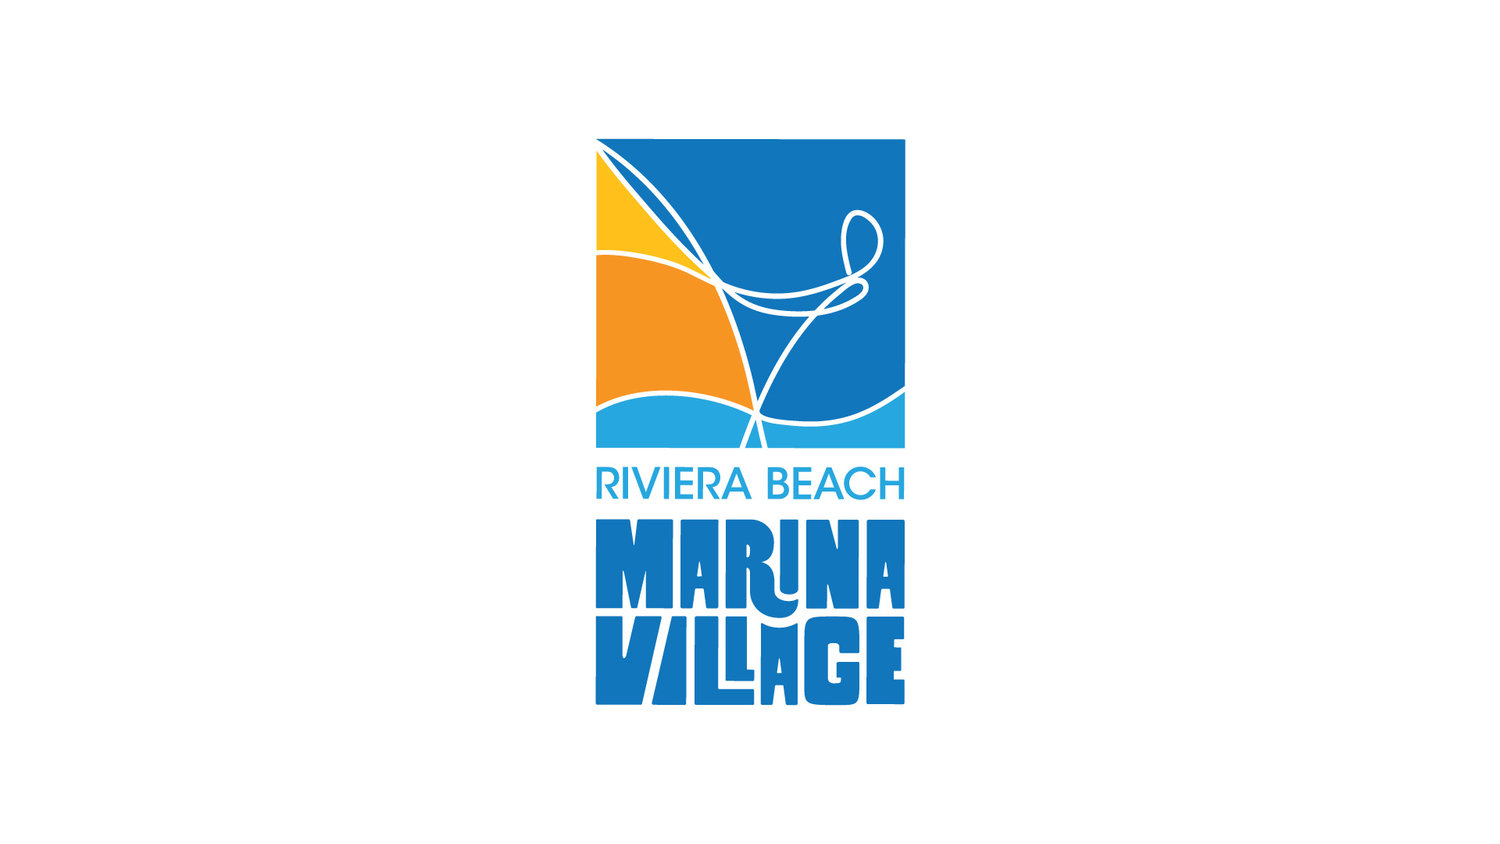 Riviera Beach Marina Village